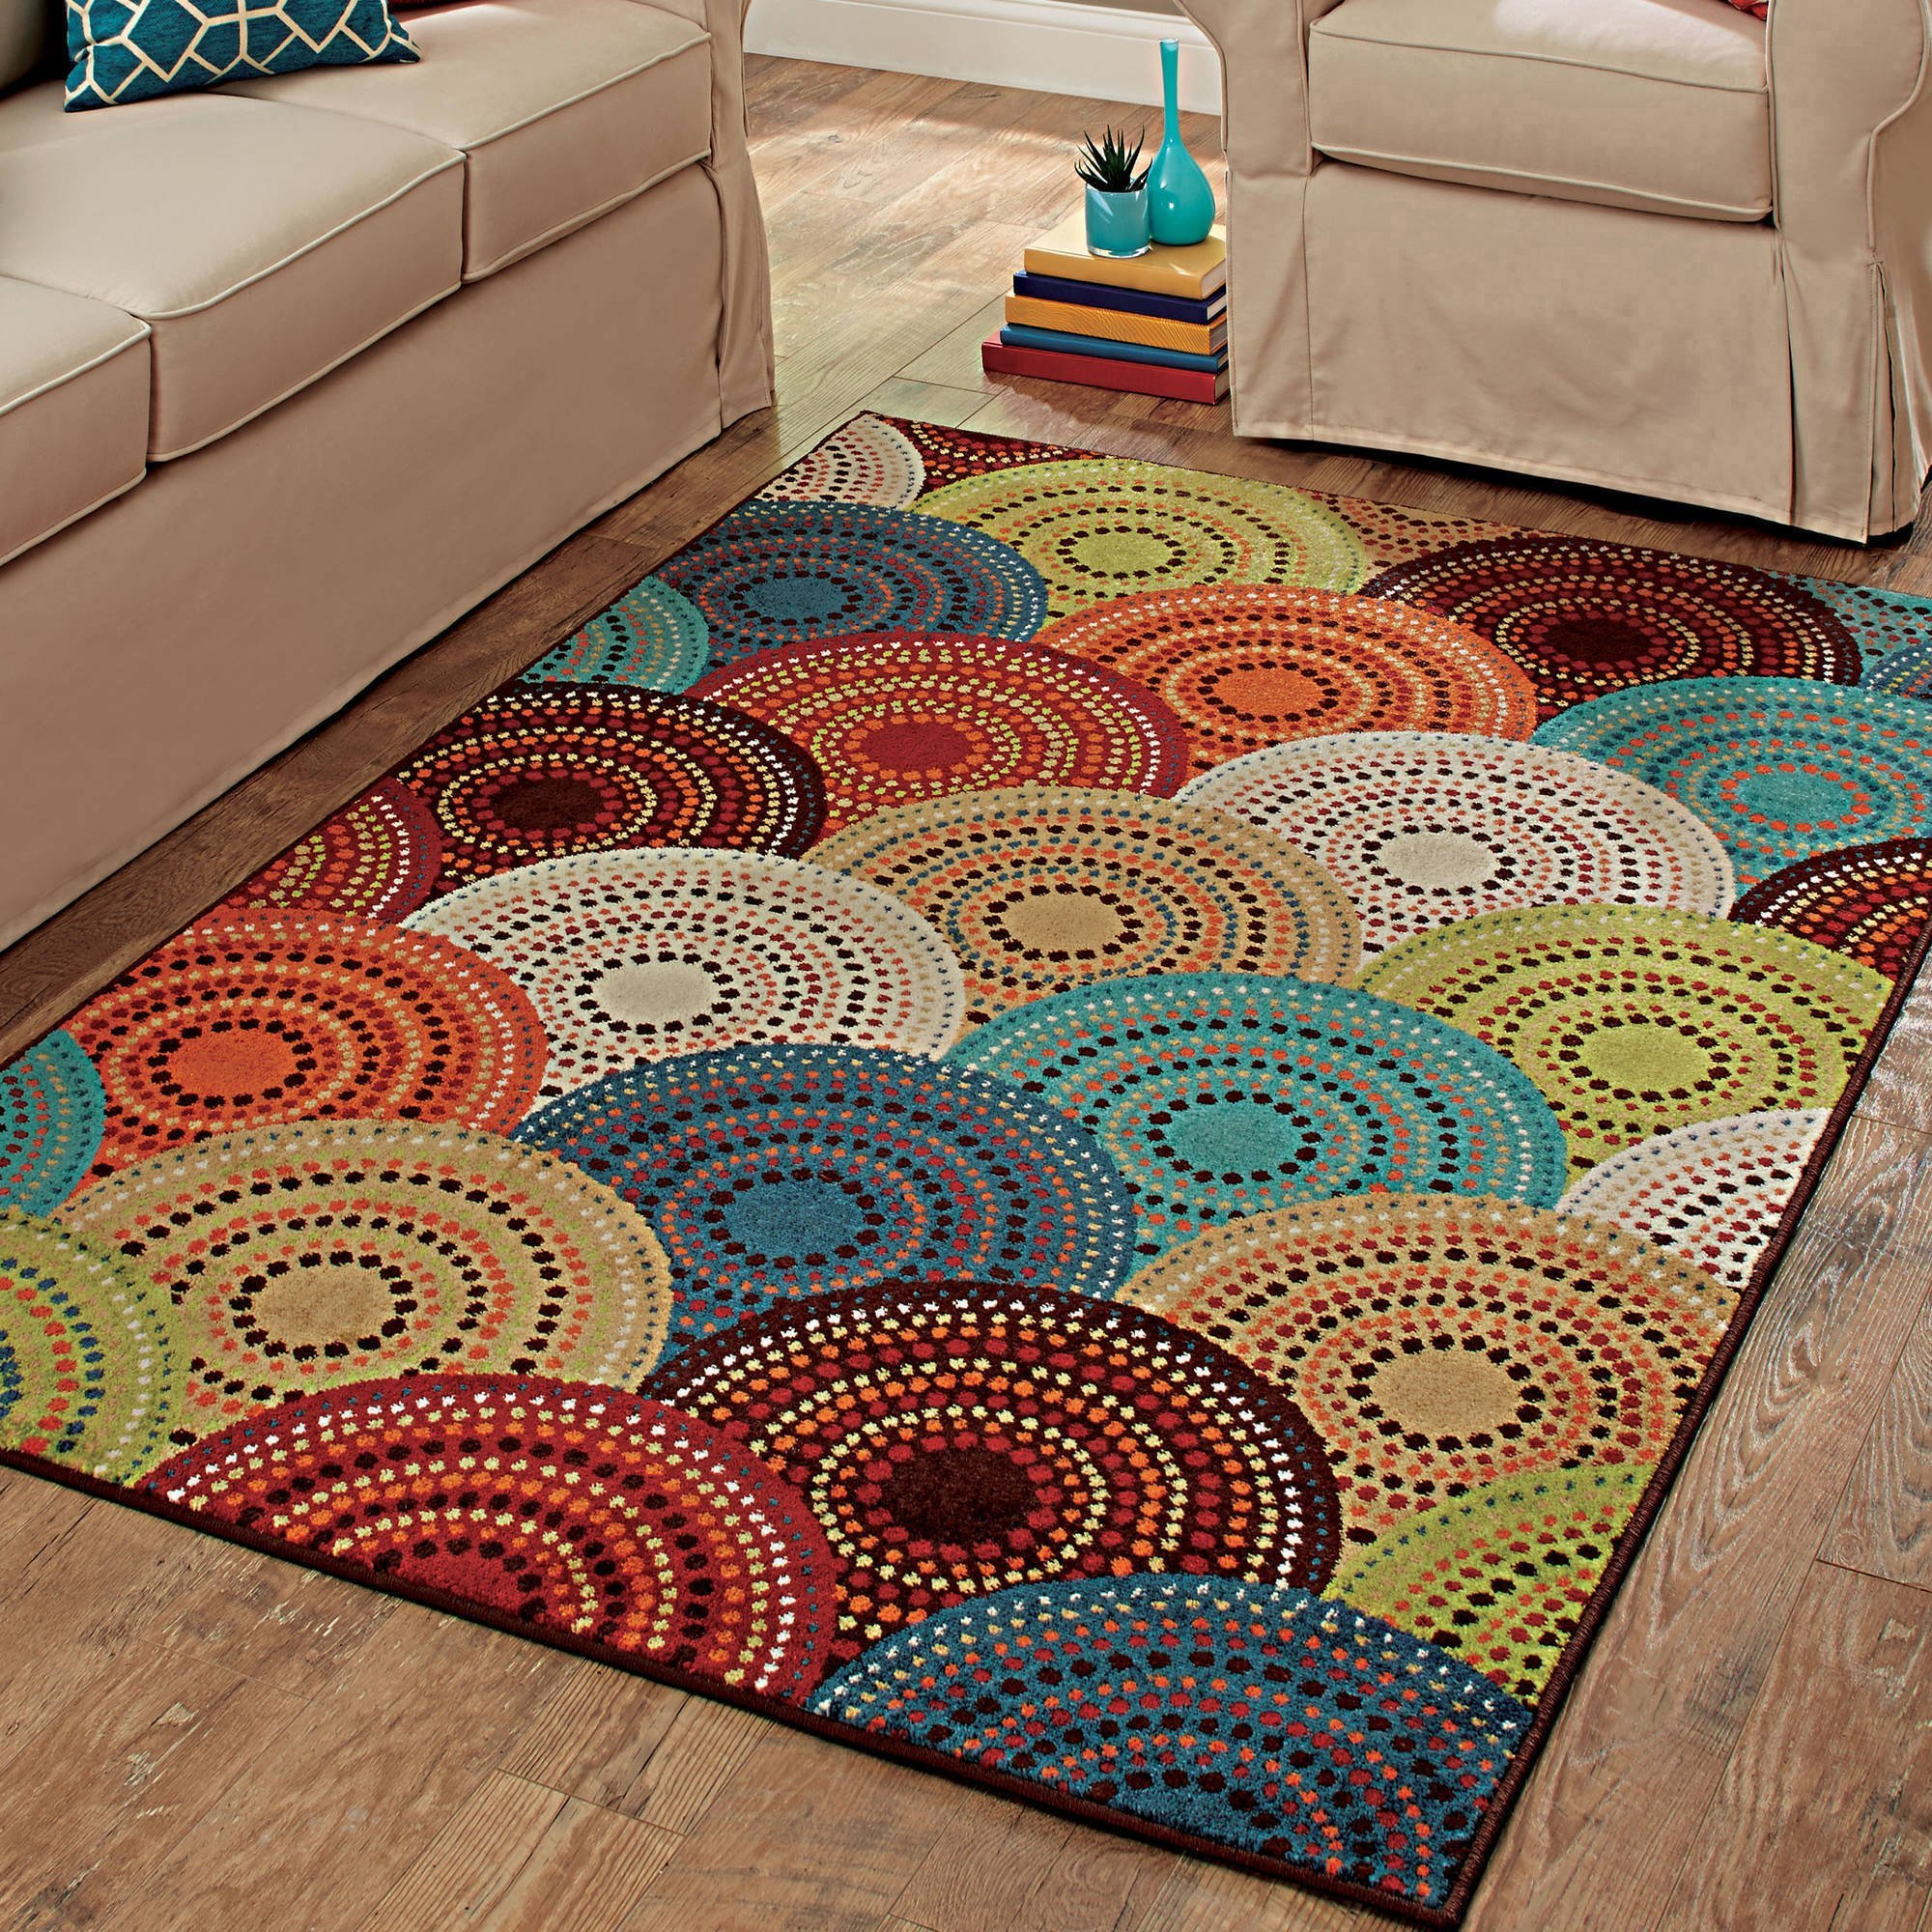 Best Mainstays Sheridan Ogee Area Rugs Or Runner Walmart Com With Pictures